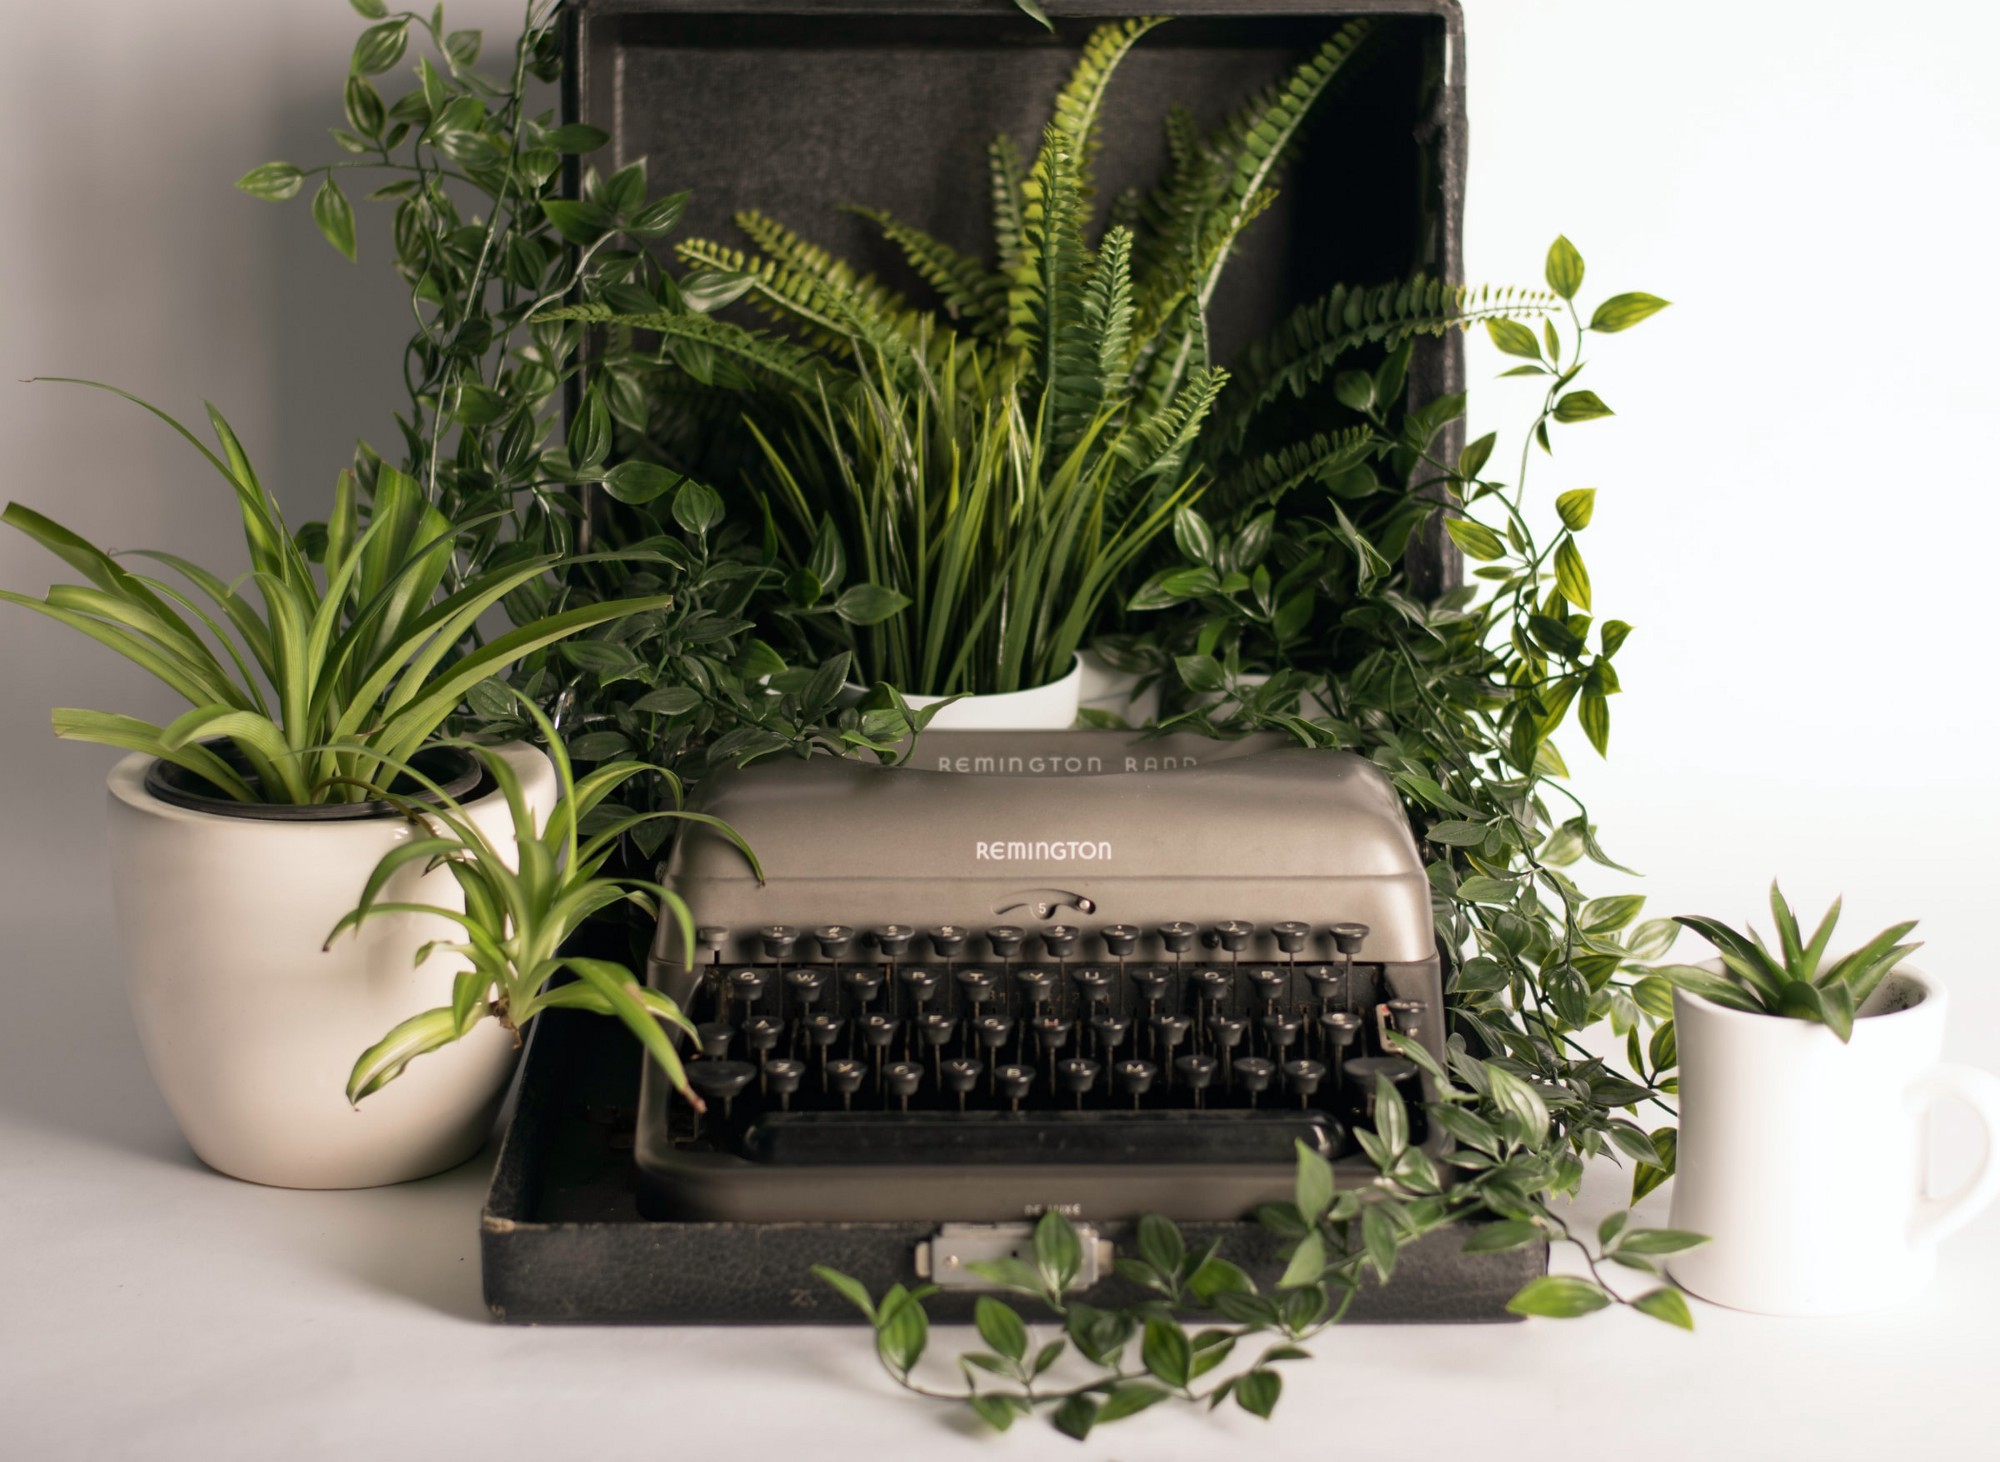 Grey and black typewriter with pots of green leave plants